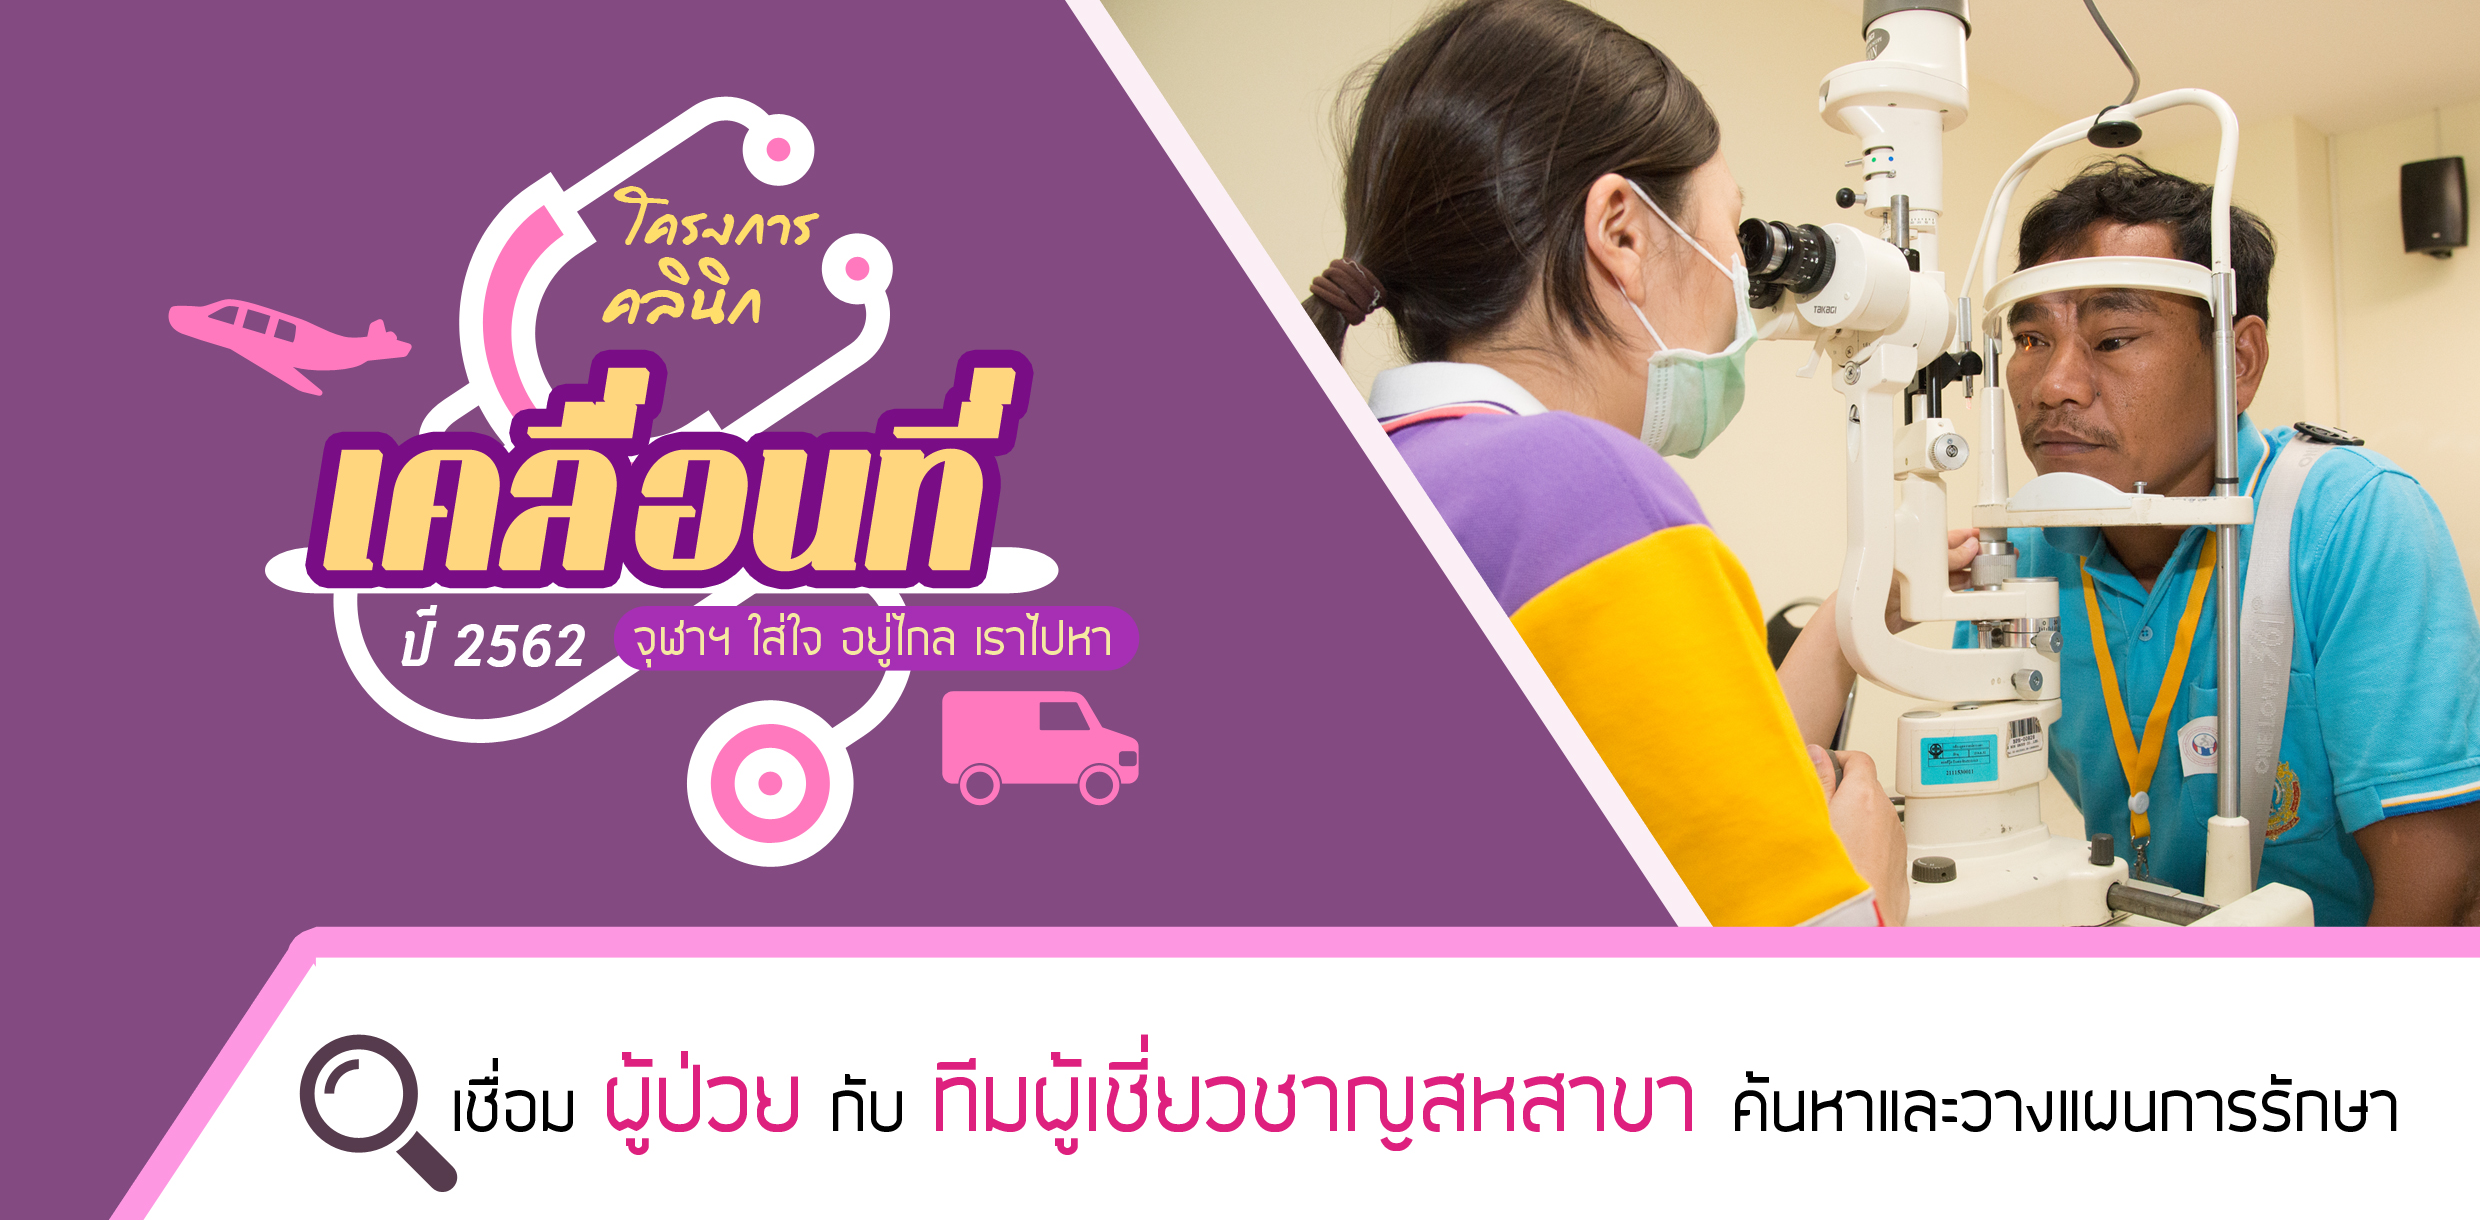 Registration form for Mobile Clinic by the Princess Sirindhorn Craniofacial Center